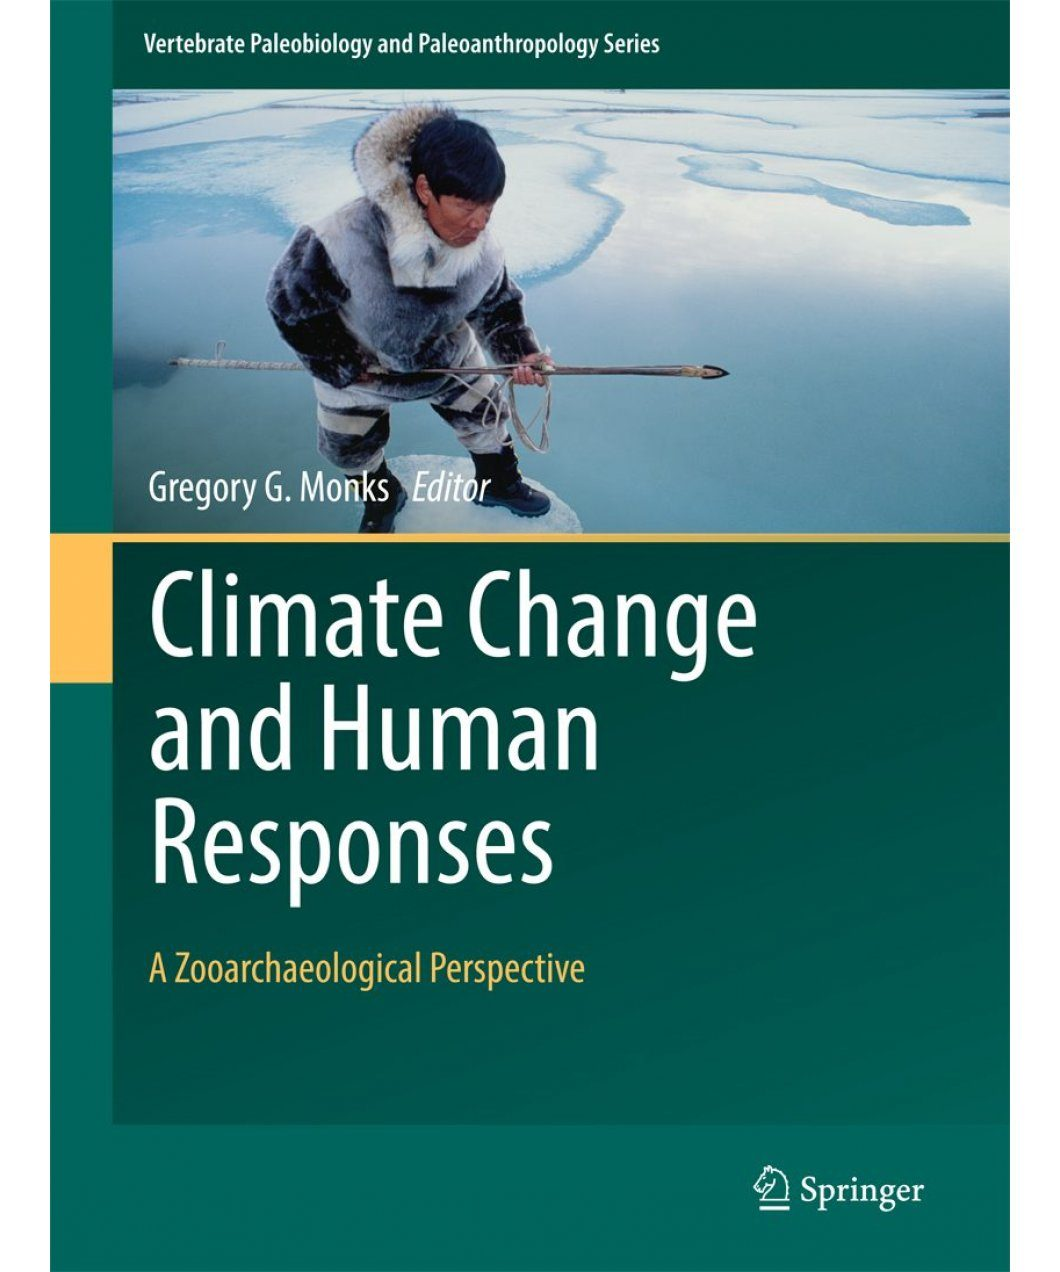 Climate Change and Human Responses